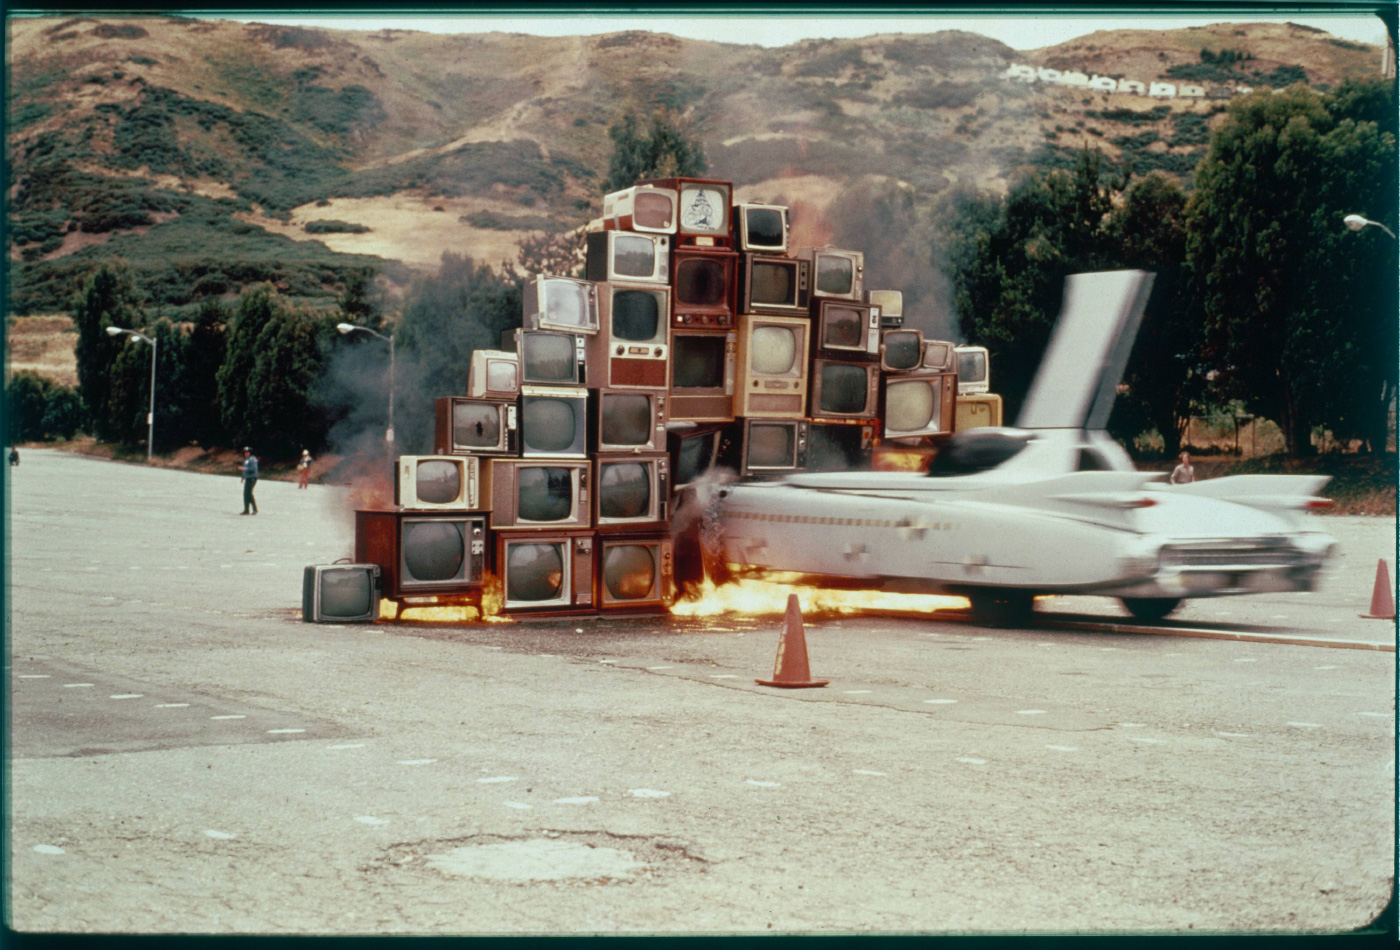 A car driving into a wall of television sets, from Ant Farm, on display at ADFF